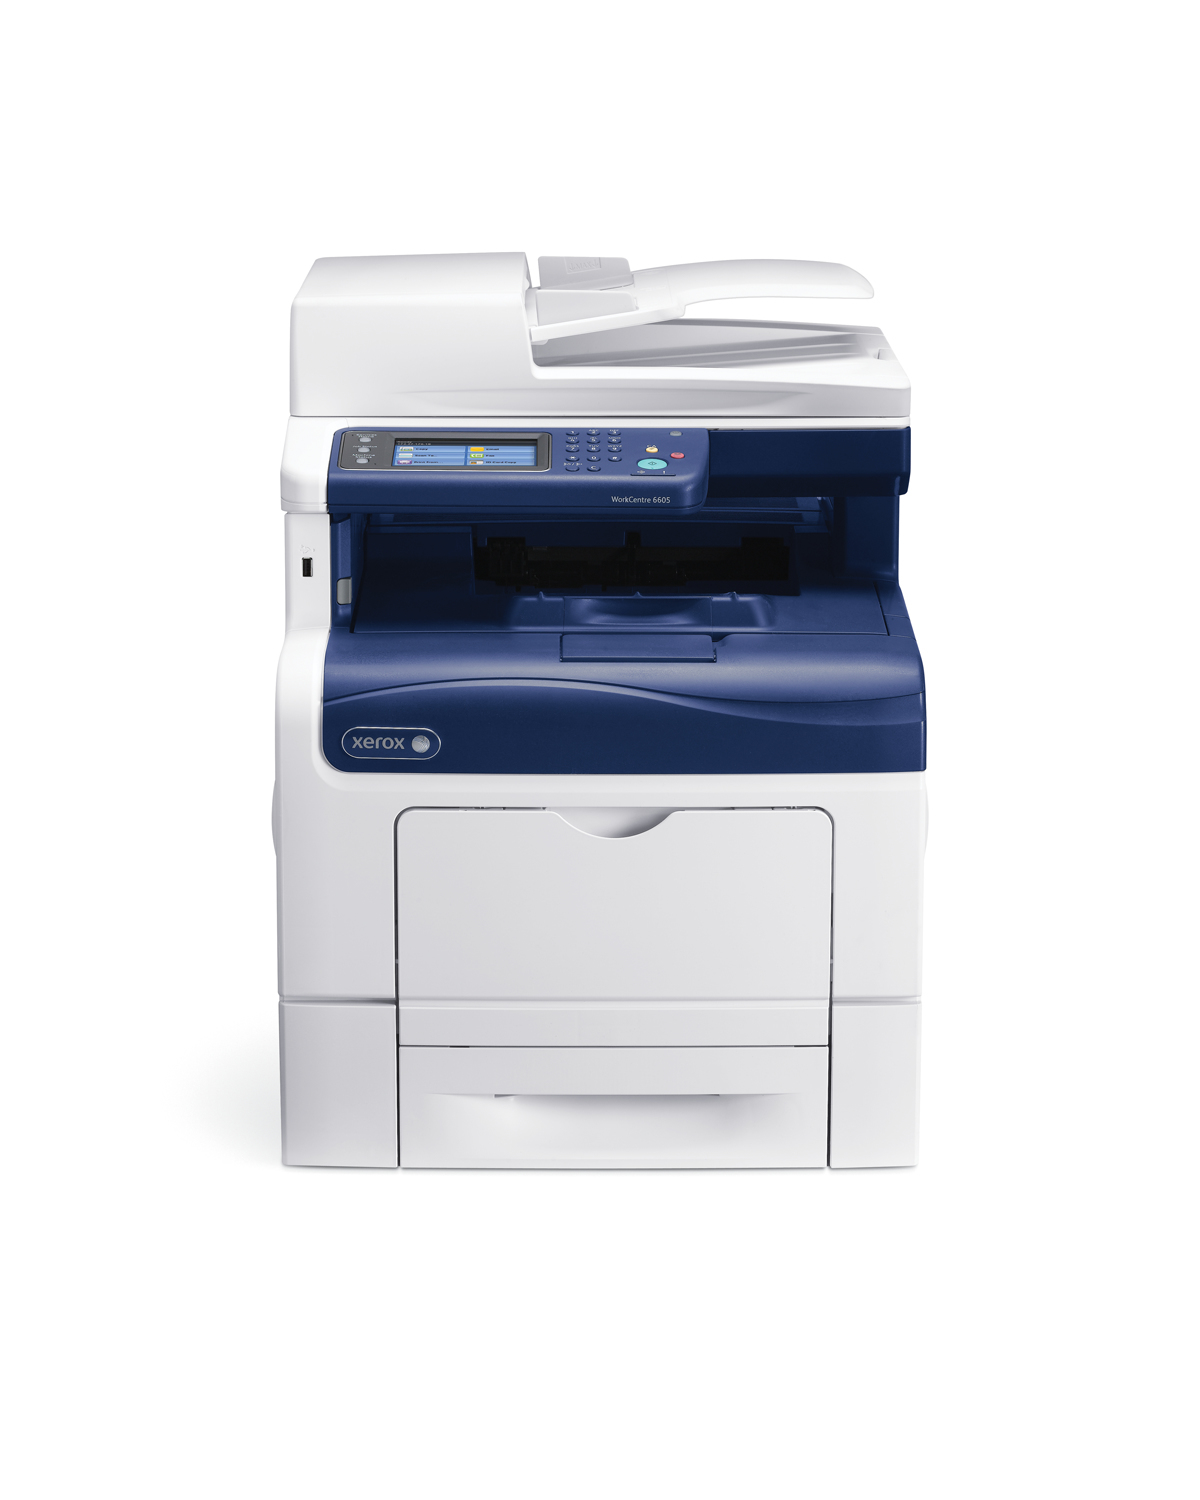 6605V_DNSP1 Xerox Workcentre 6605DN Colour Printer  - Refurbished